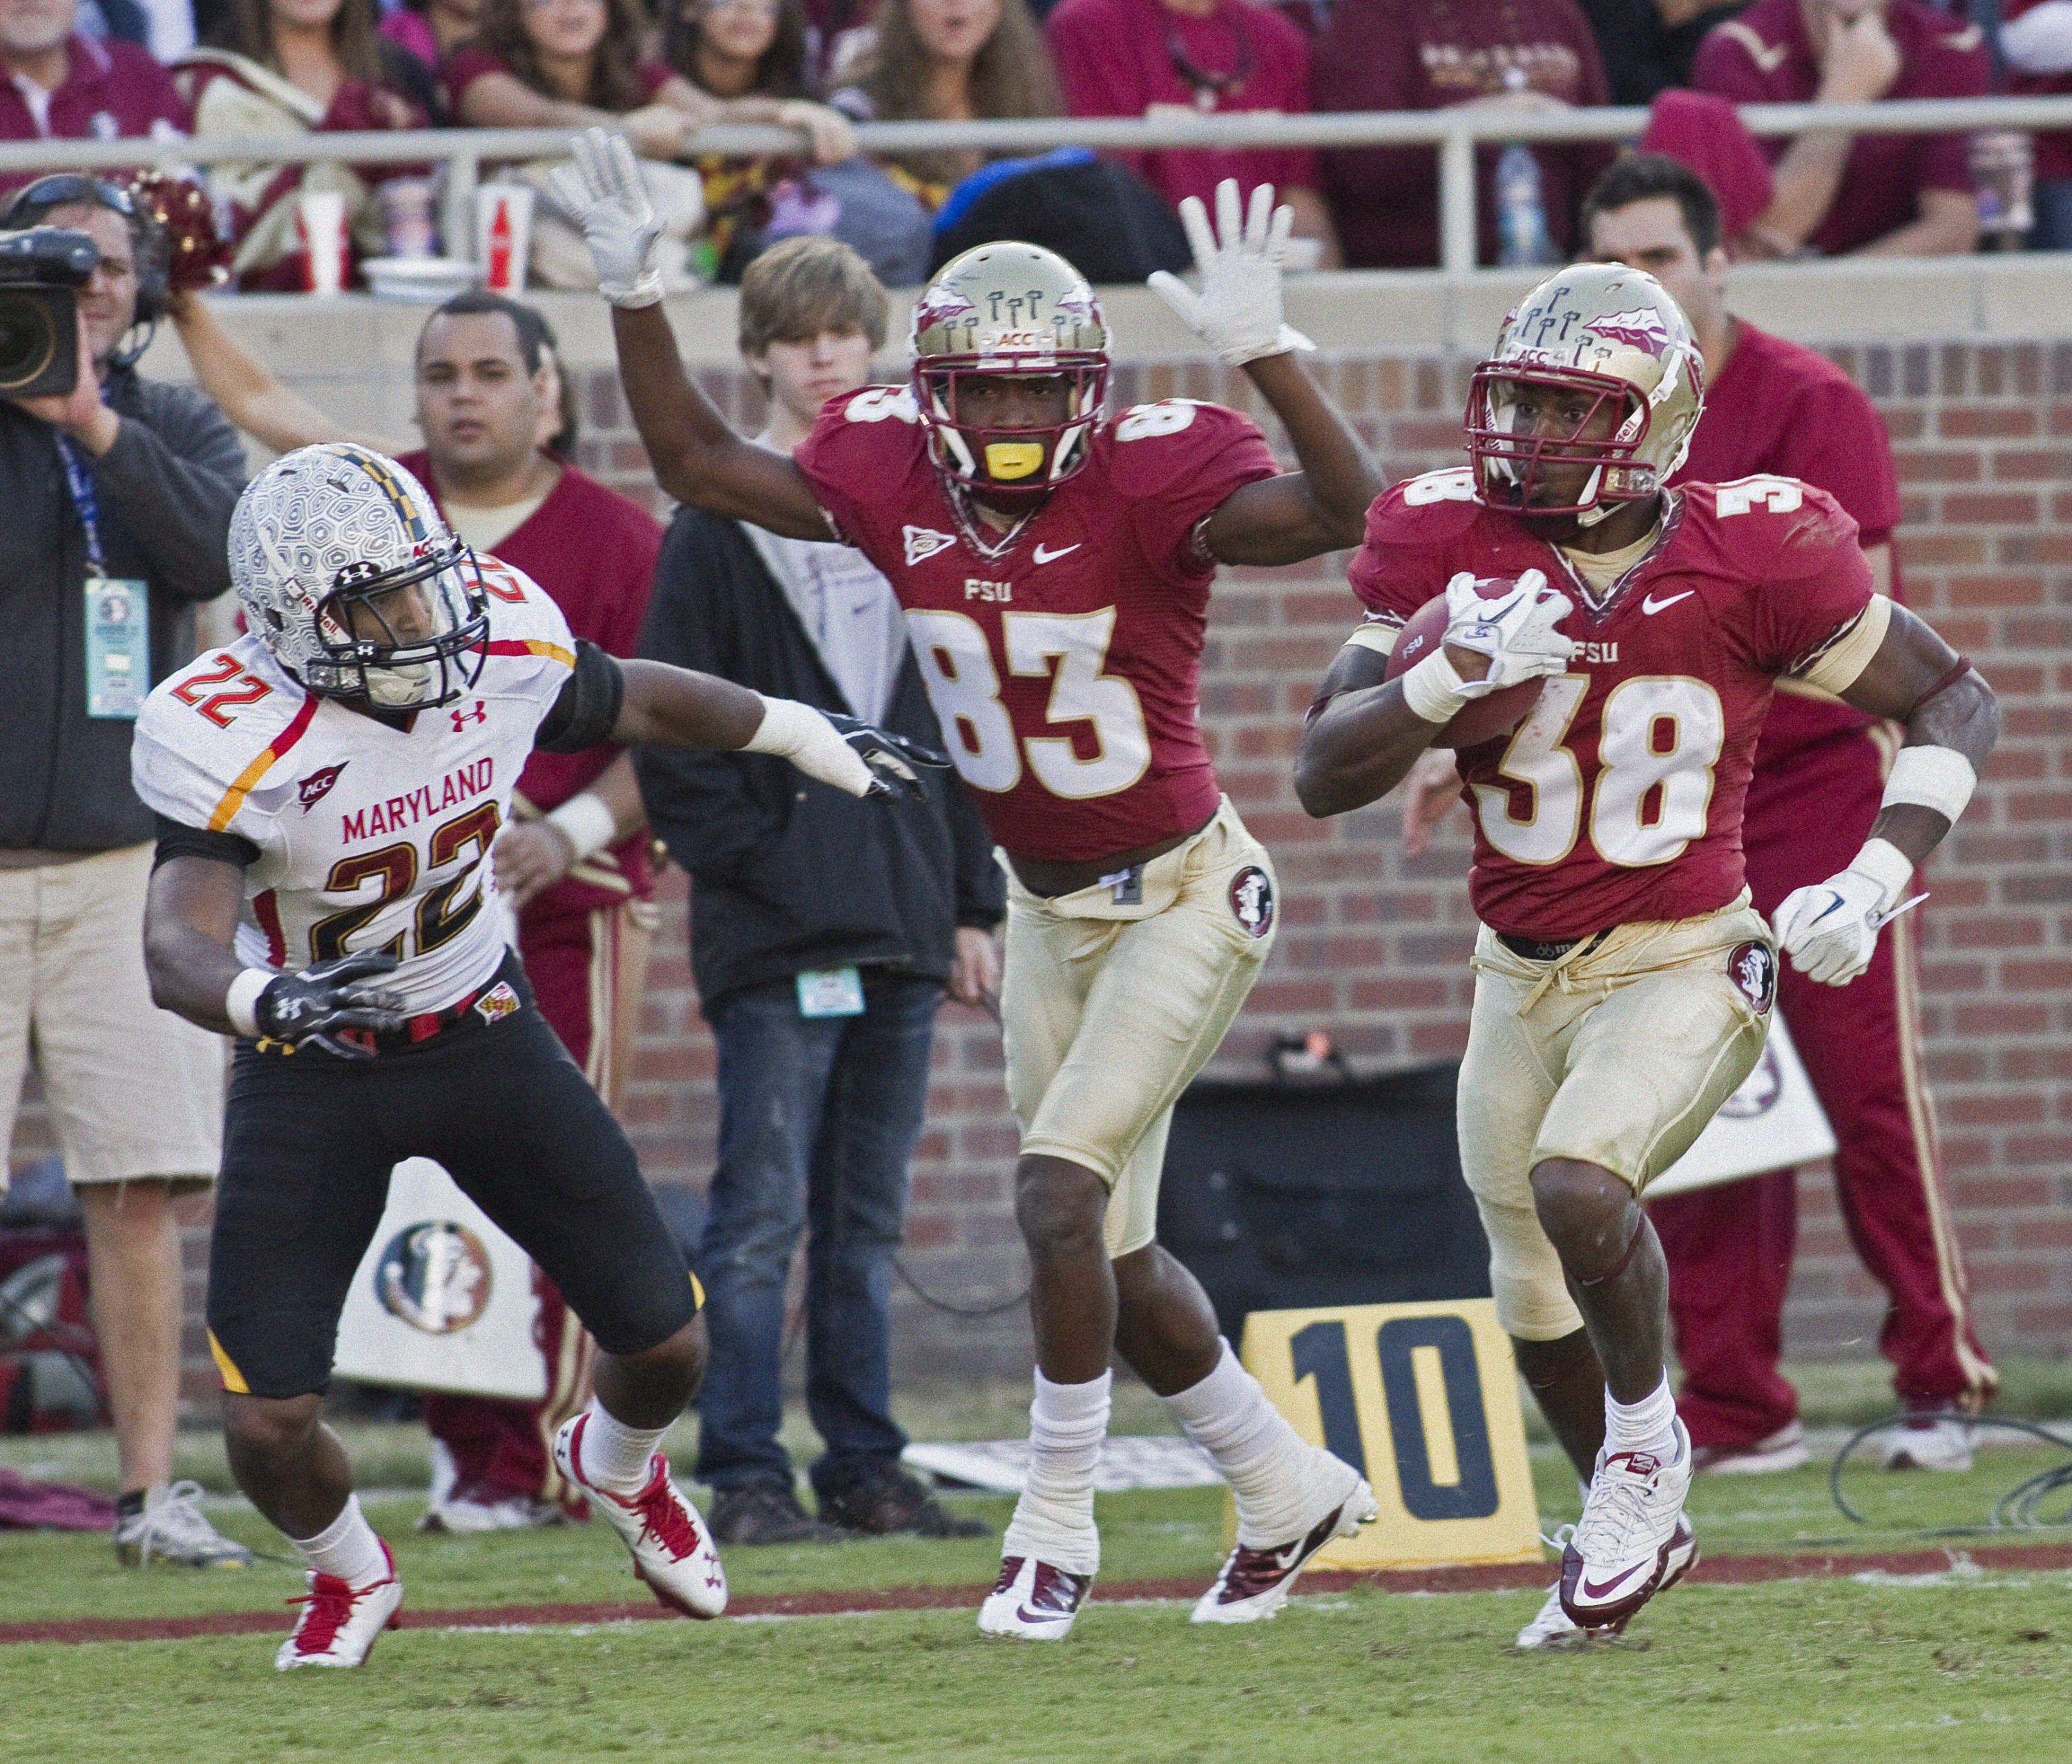 Jermaine Thomas (38) breaks away for an FSU 3rd quarter touchdown. FSU vs Maryland 10/22/1111